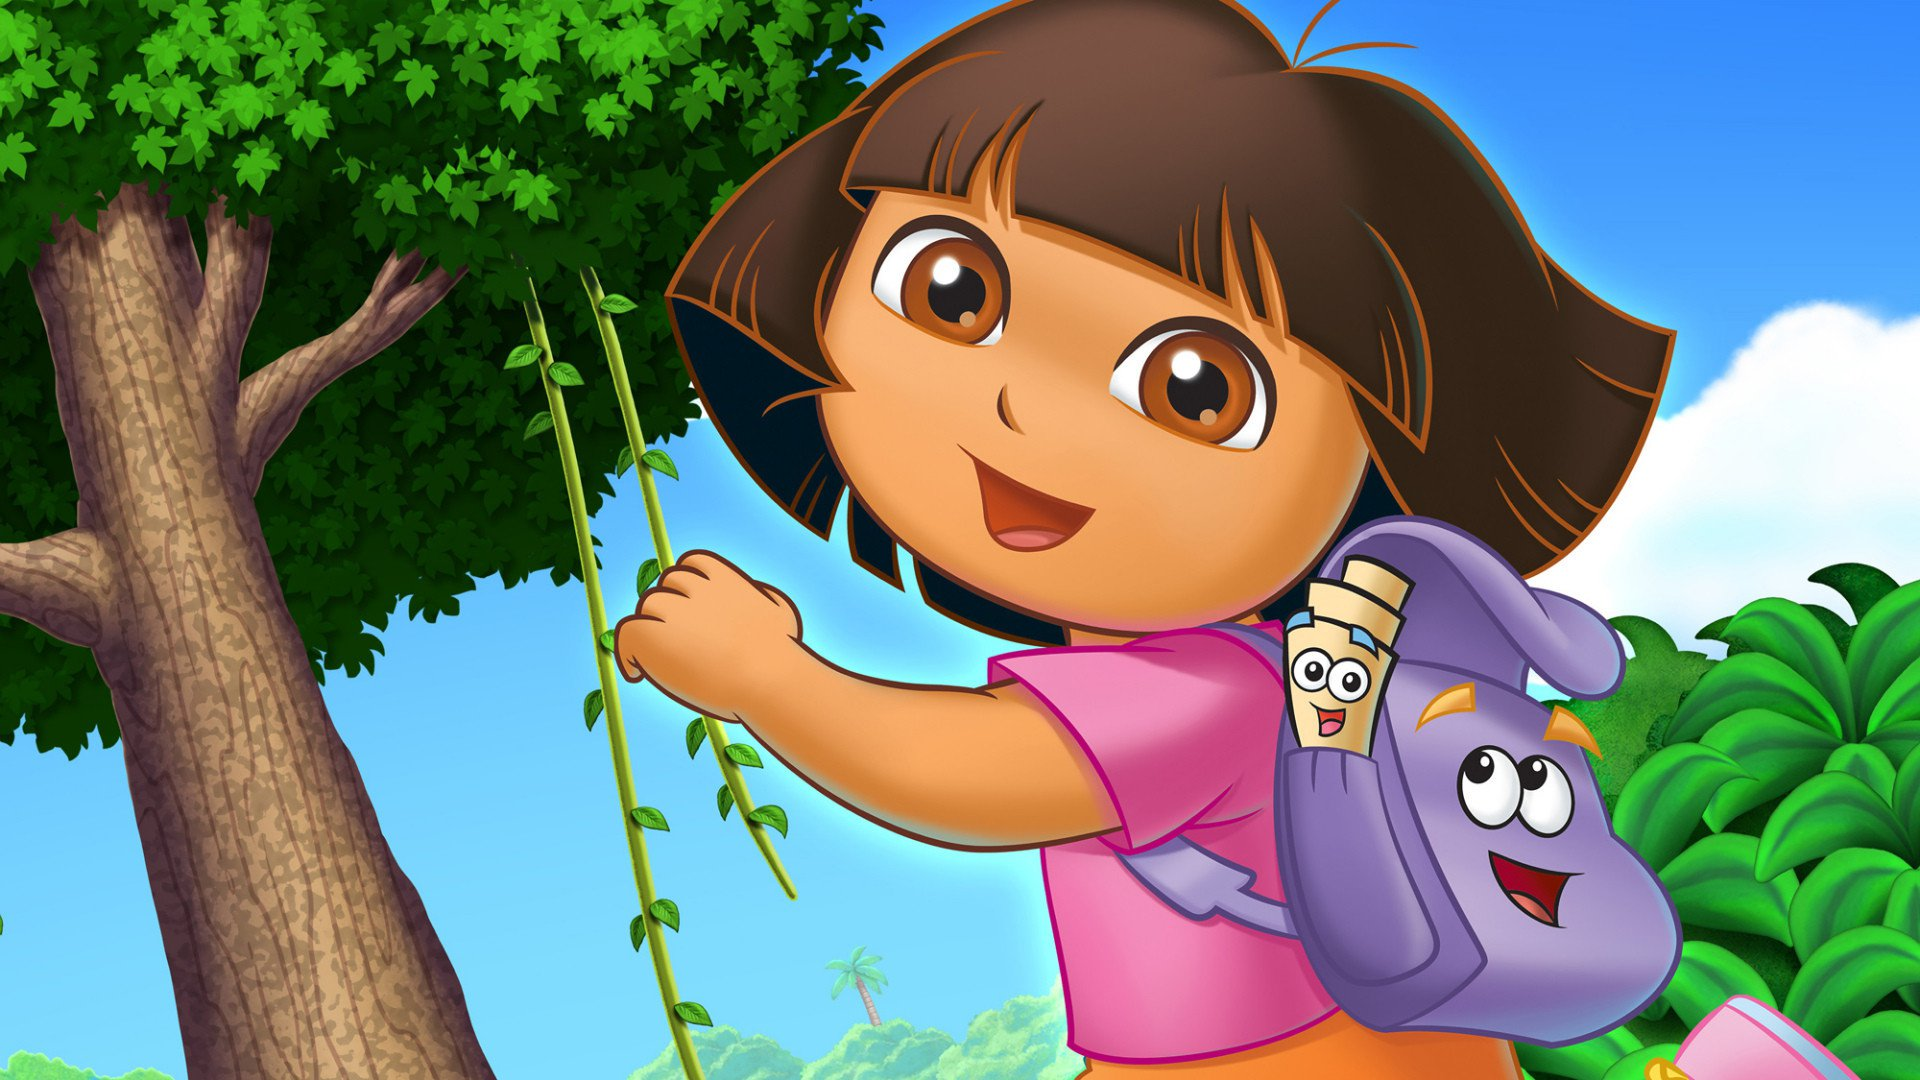 dora latino personals Dora the explorer full episodes - animated movies 2015 english - cartoon movie for kids - duration: 1:02:08 fgbcfh vbcdg 5,457,582 views  moana & maui dating love story.